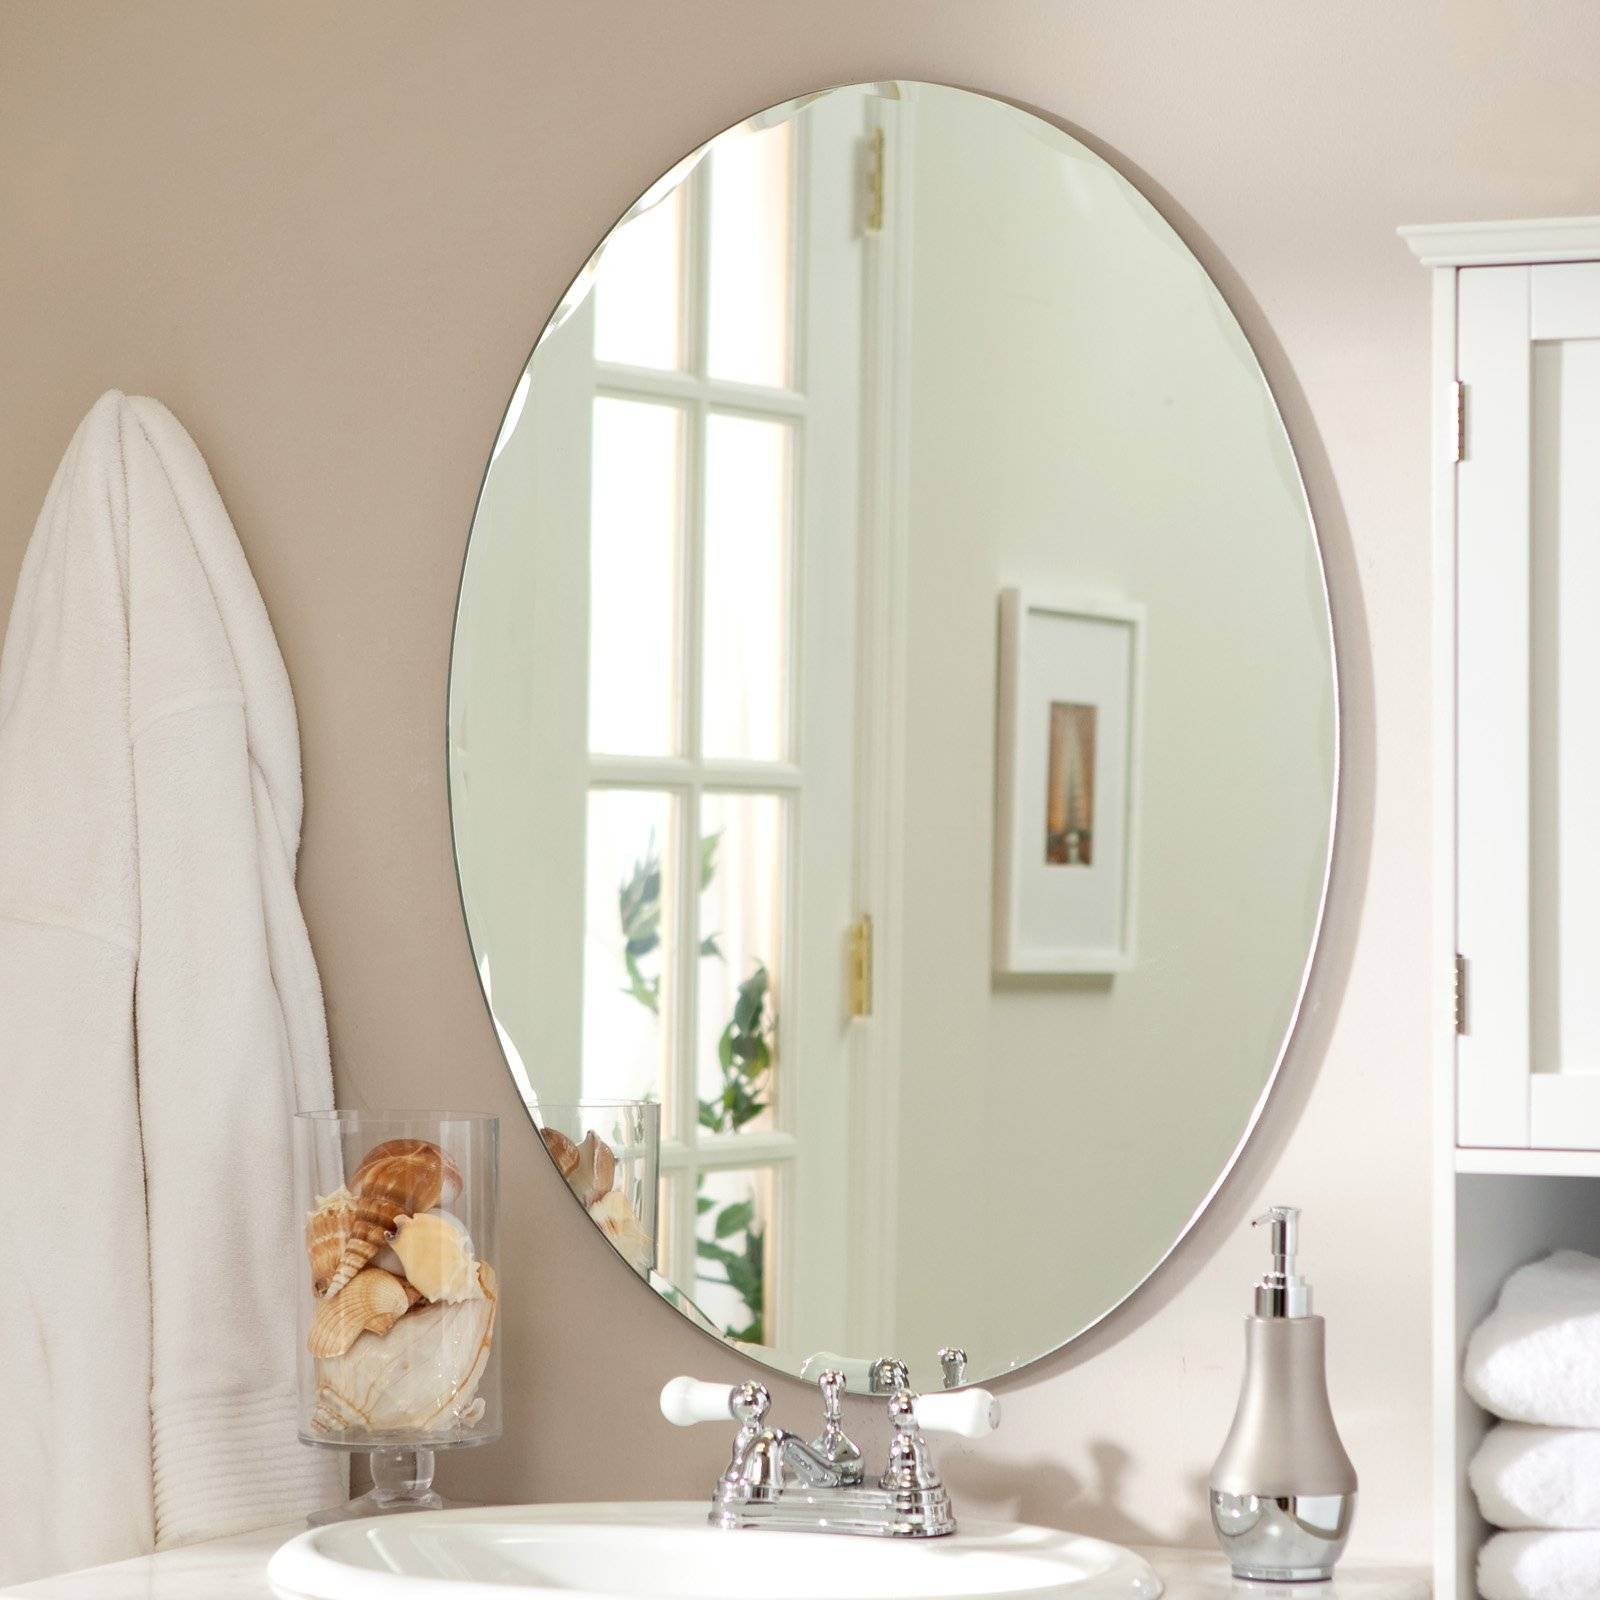 Mirror : Oval Bevelled Mirror Satiating' Shocking' Infatuate Oval with regard to Oval Bevelled Mirrors (Image 10 of 15)